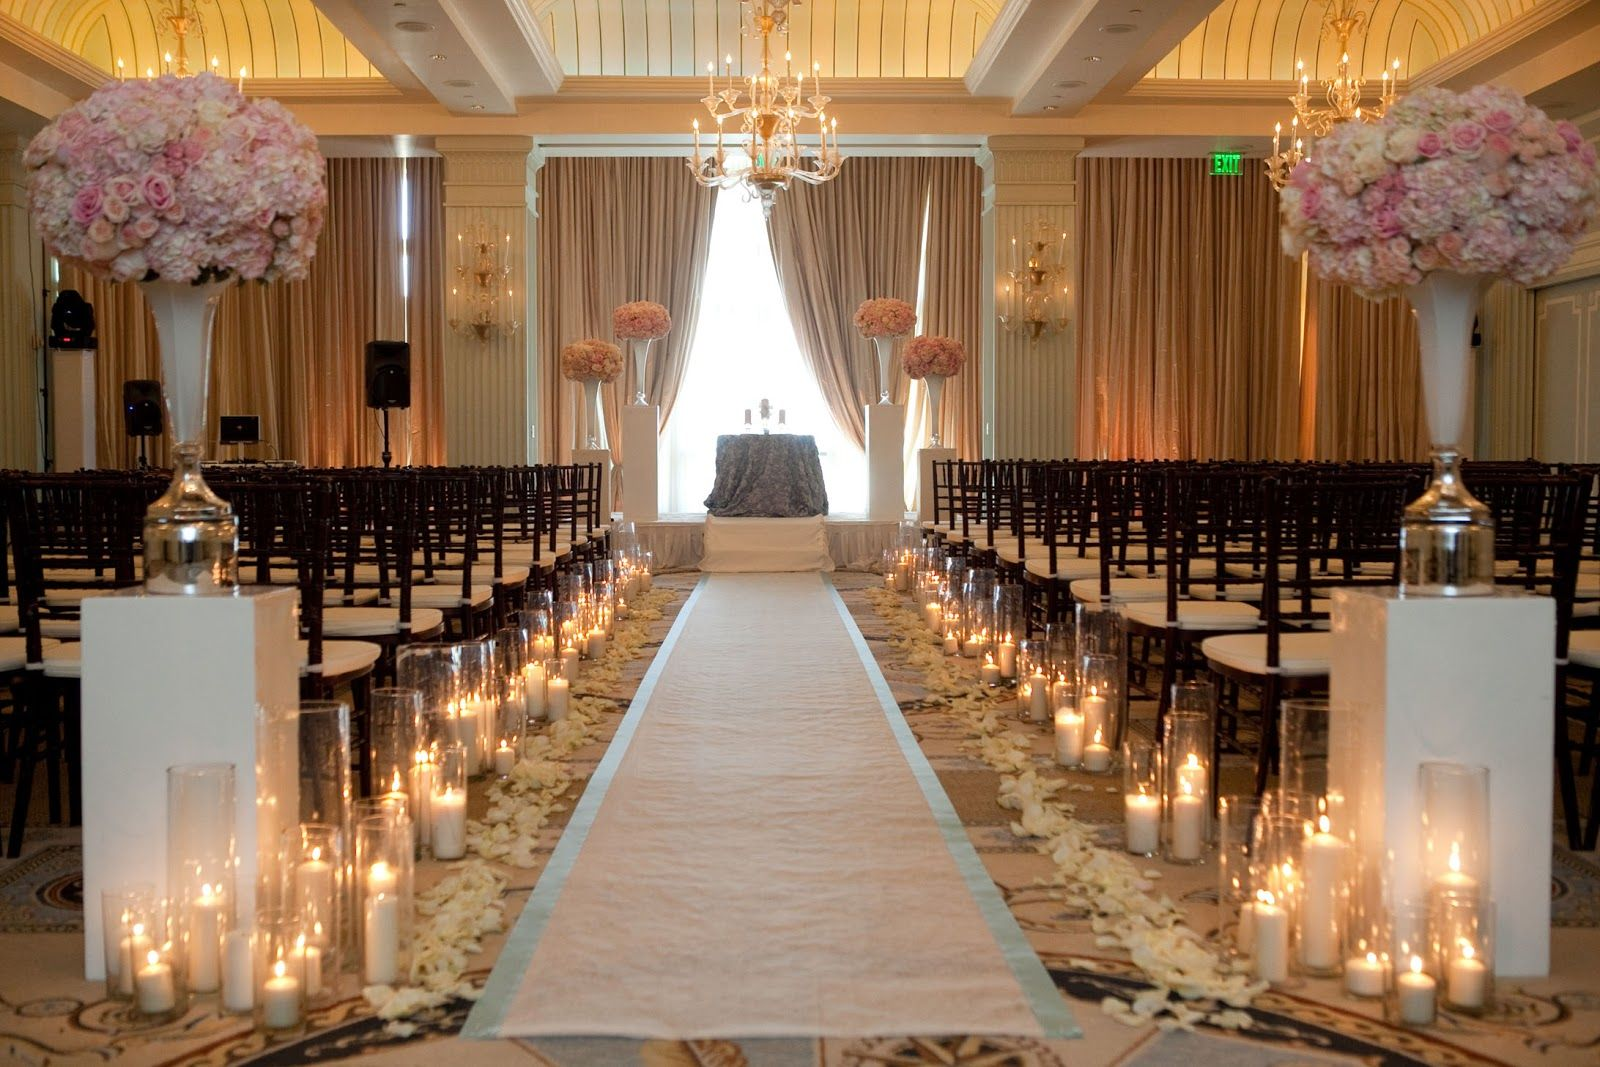 Warm romantic wedding ceremony with gazebo and pillars for Wedding walkway